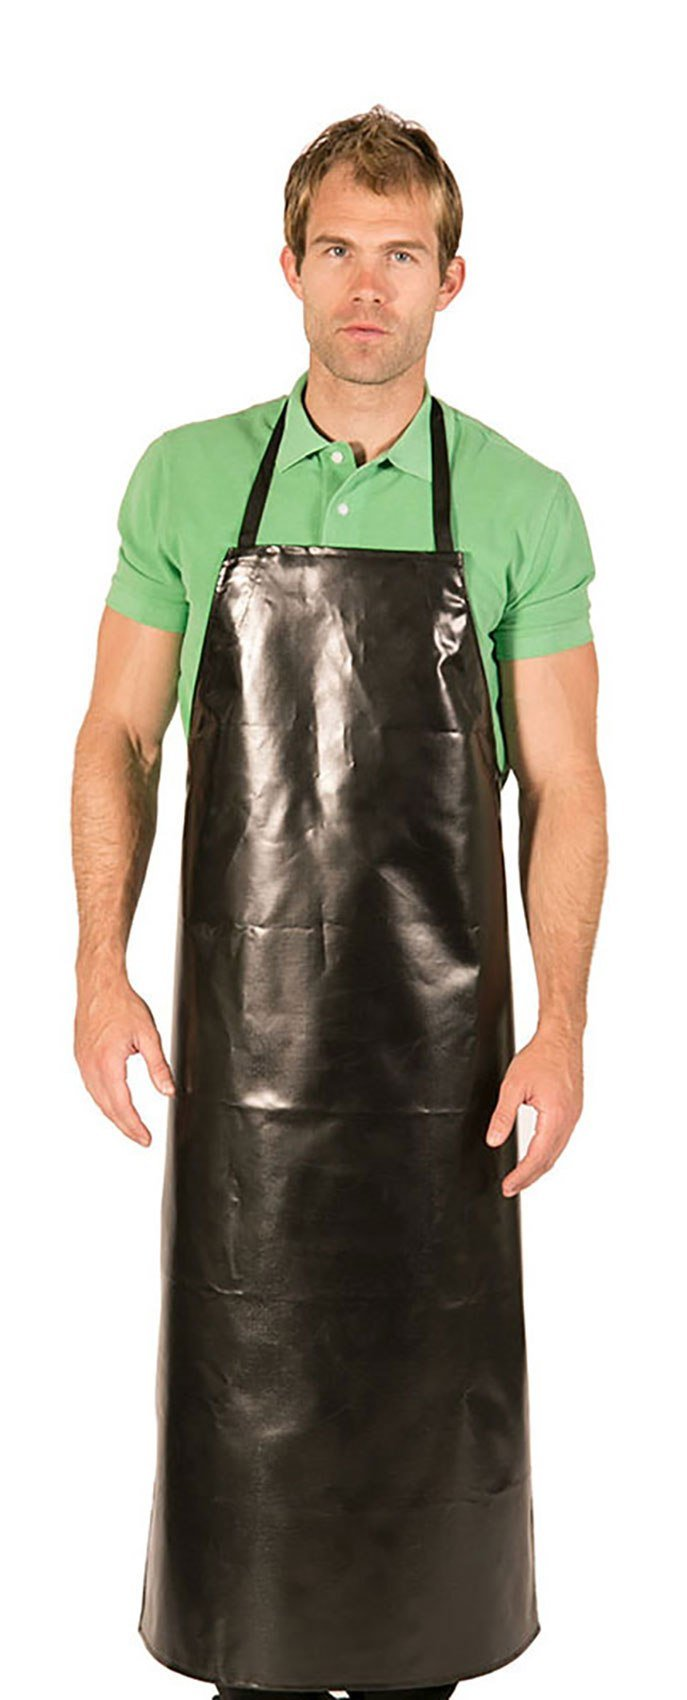 HI-LITE 888HDA Adjustable Janitorial & Chemical Bib Apron Extra Long, Waterproof, Black